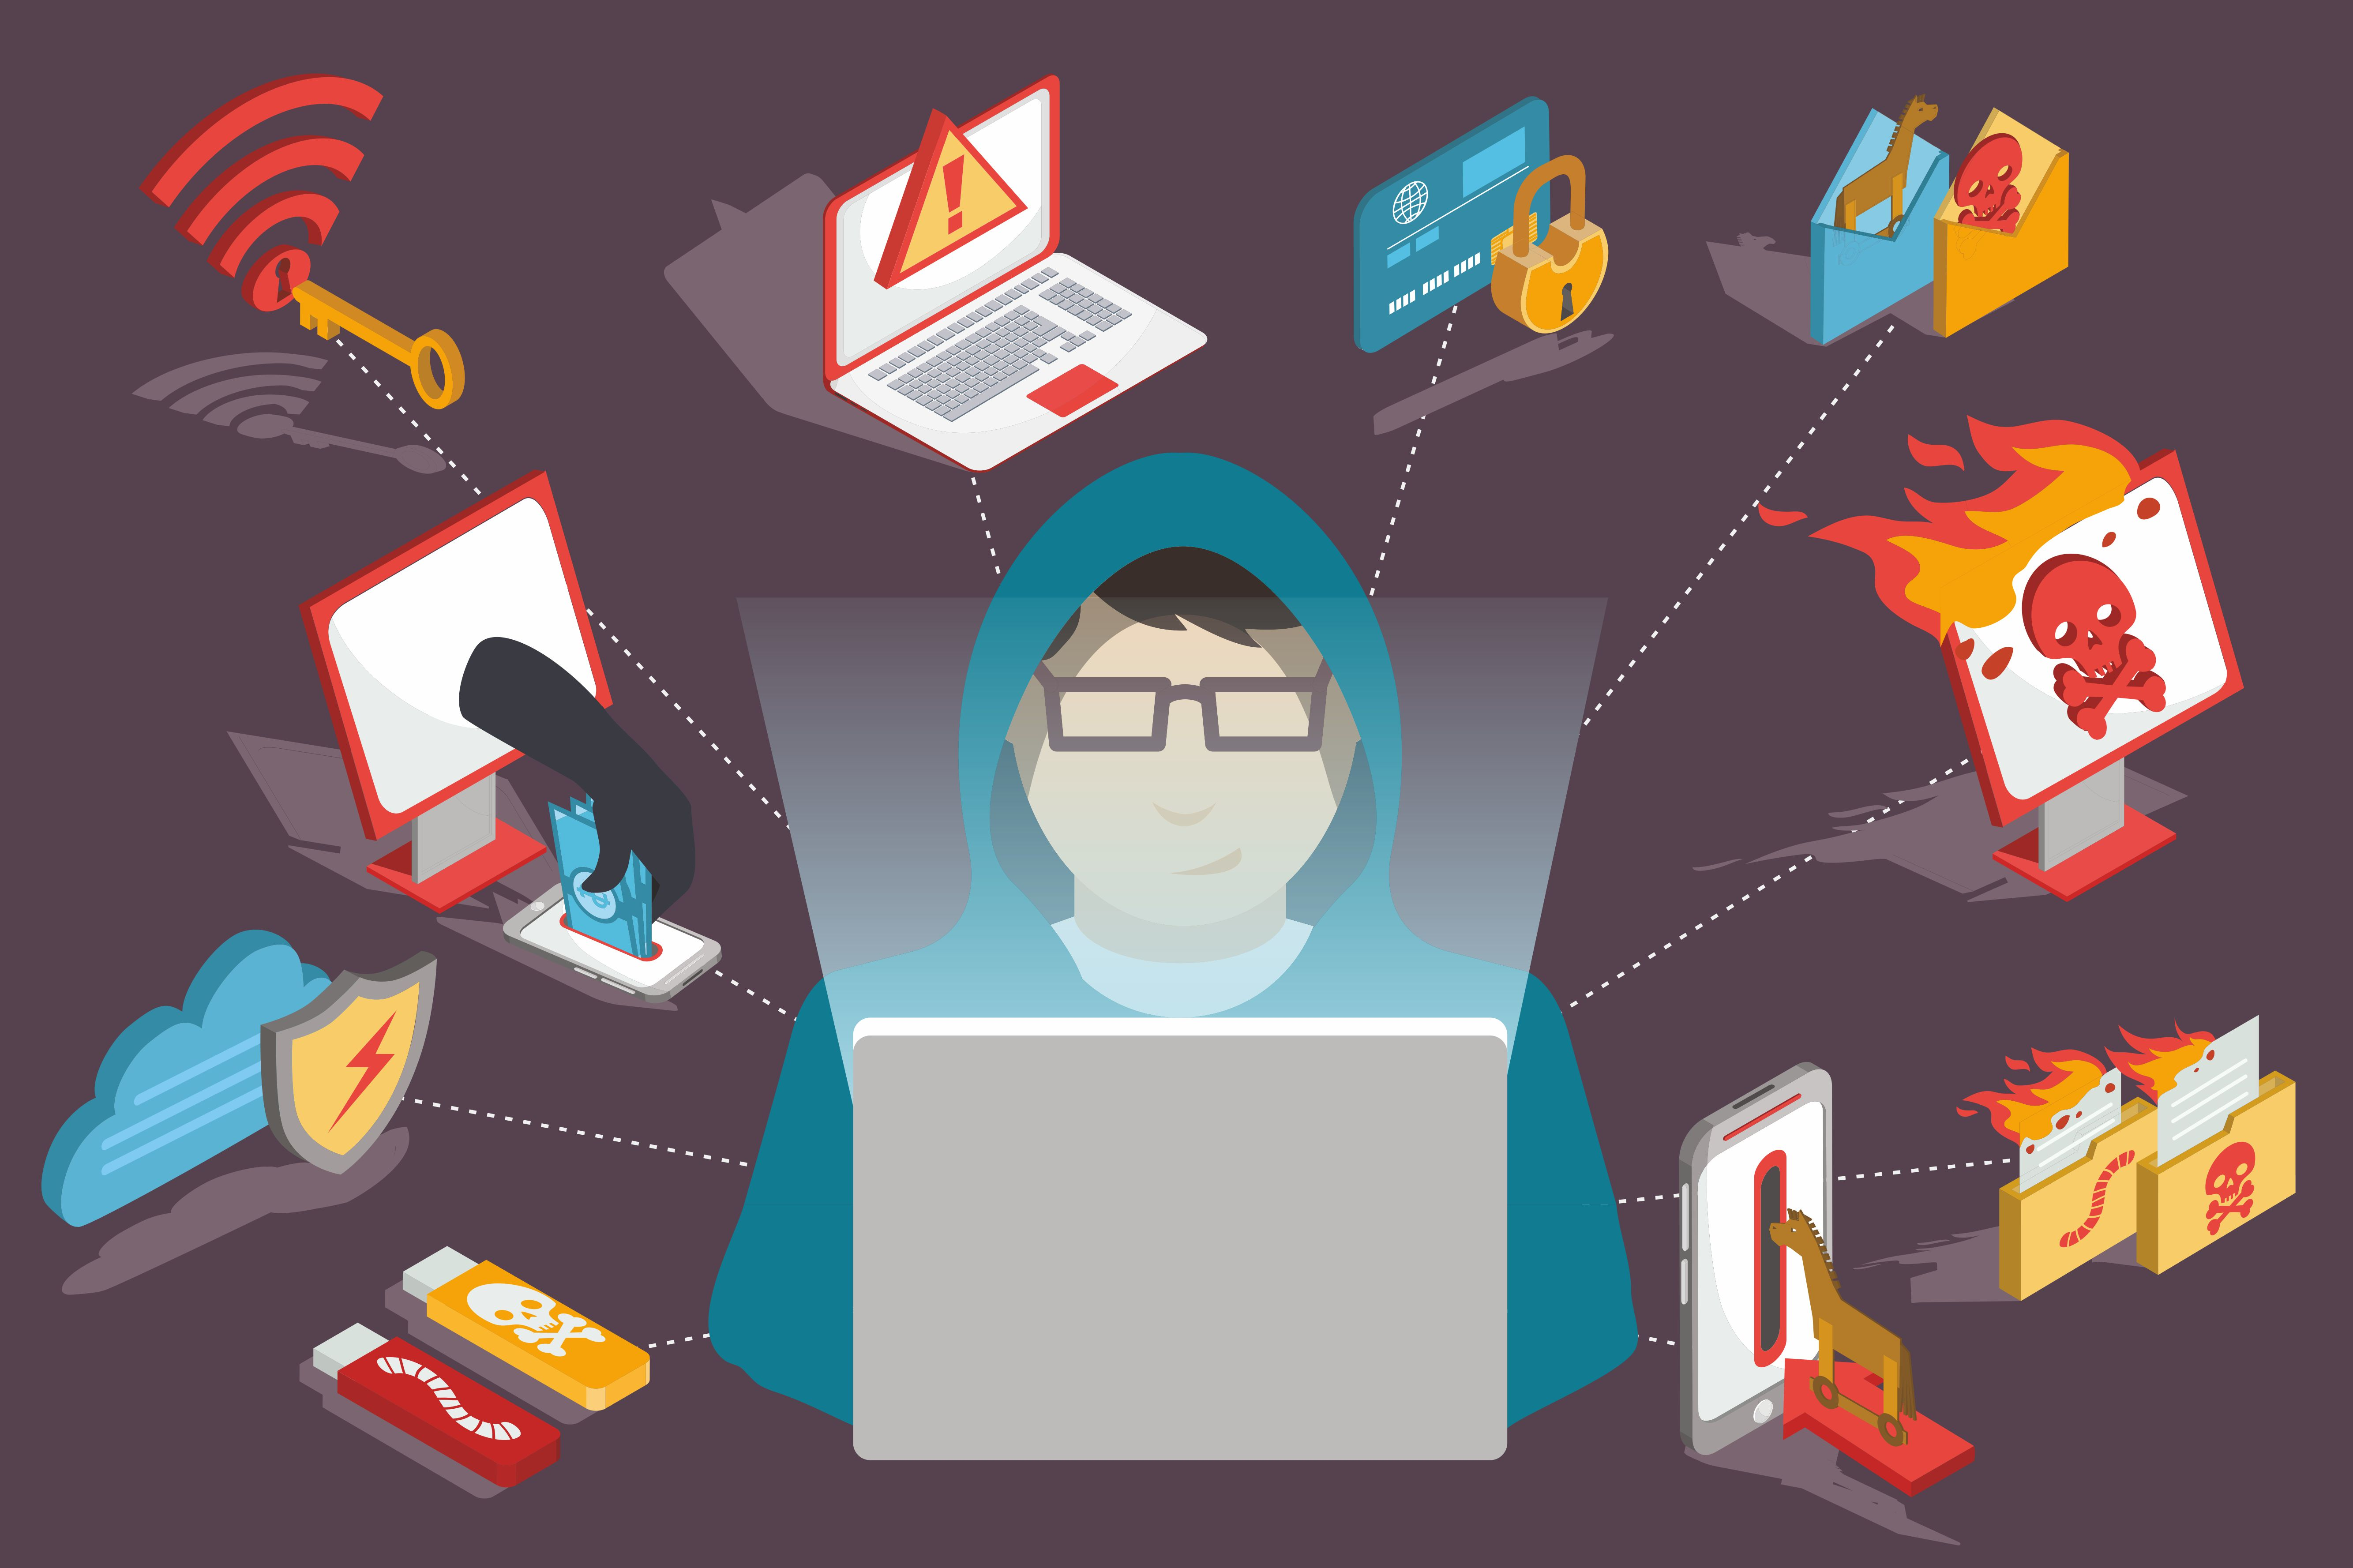 How to manage risks in IT department